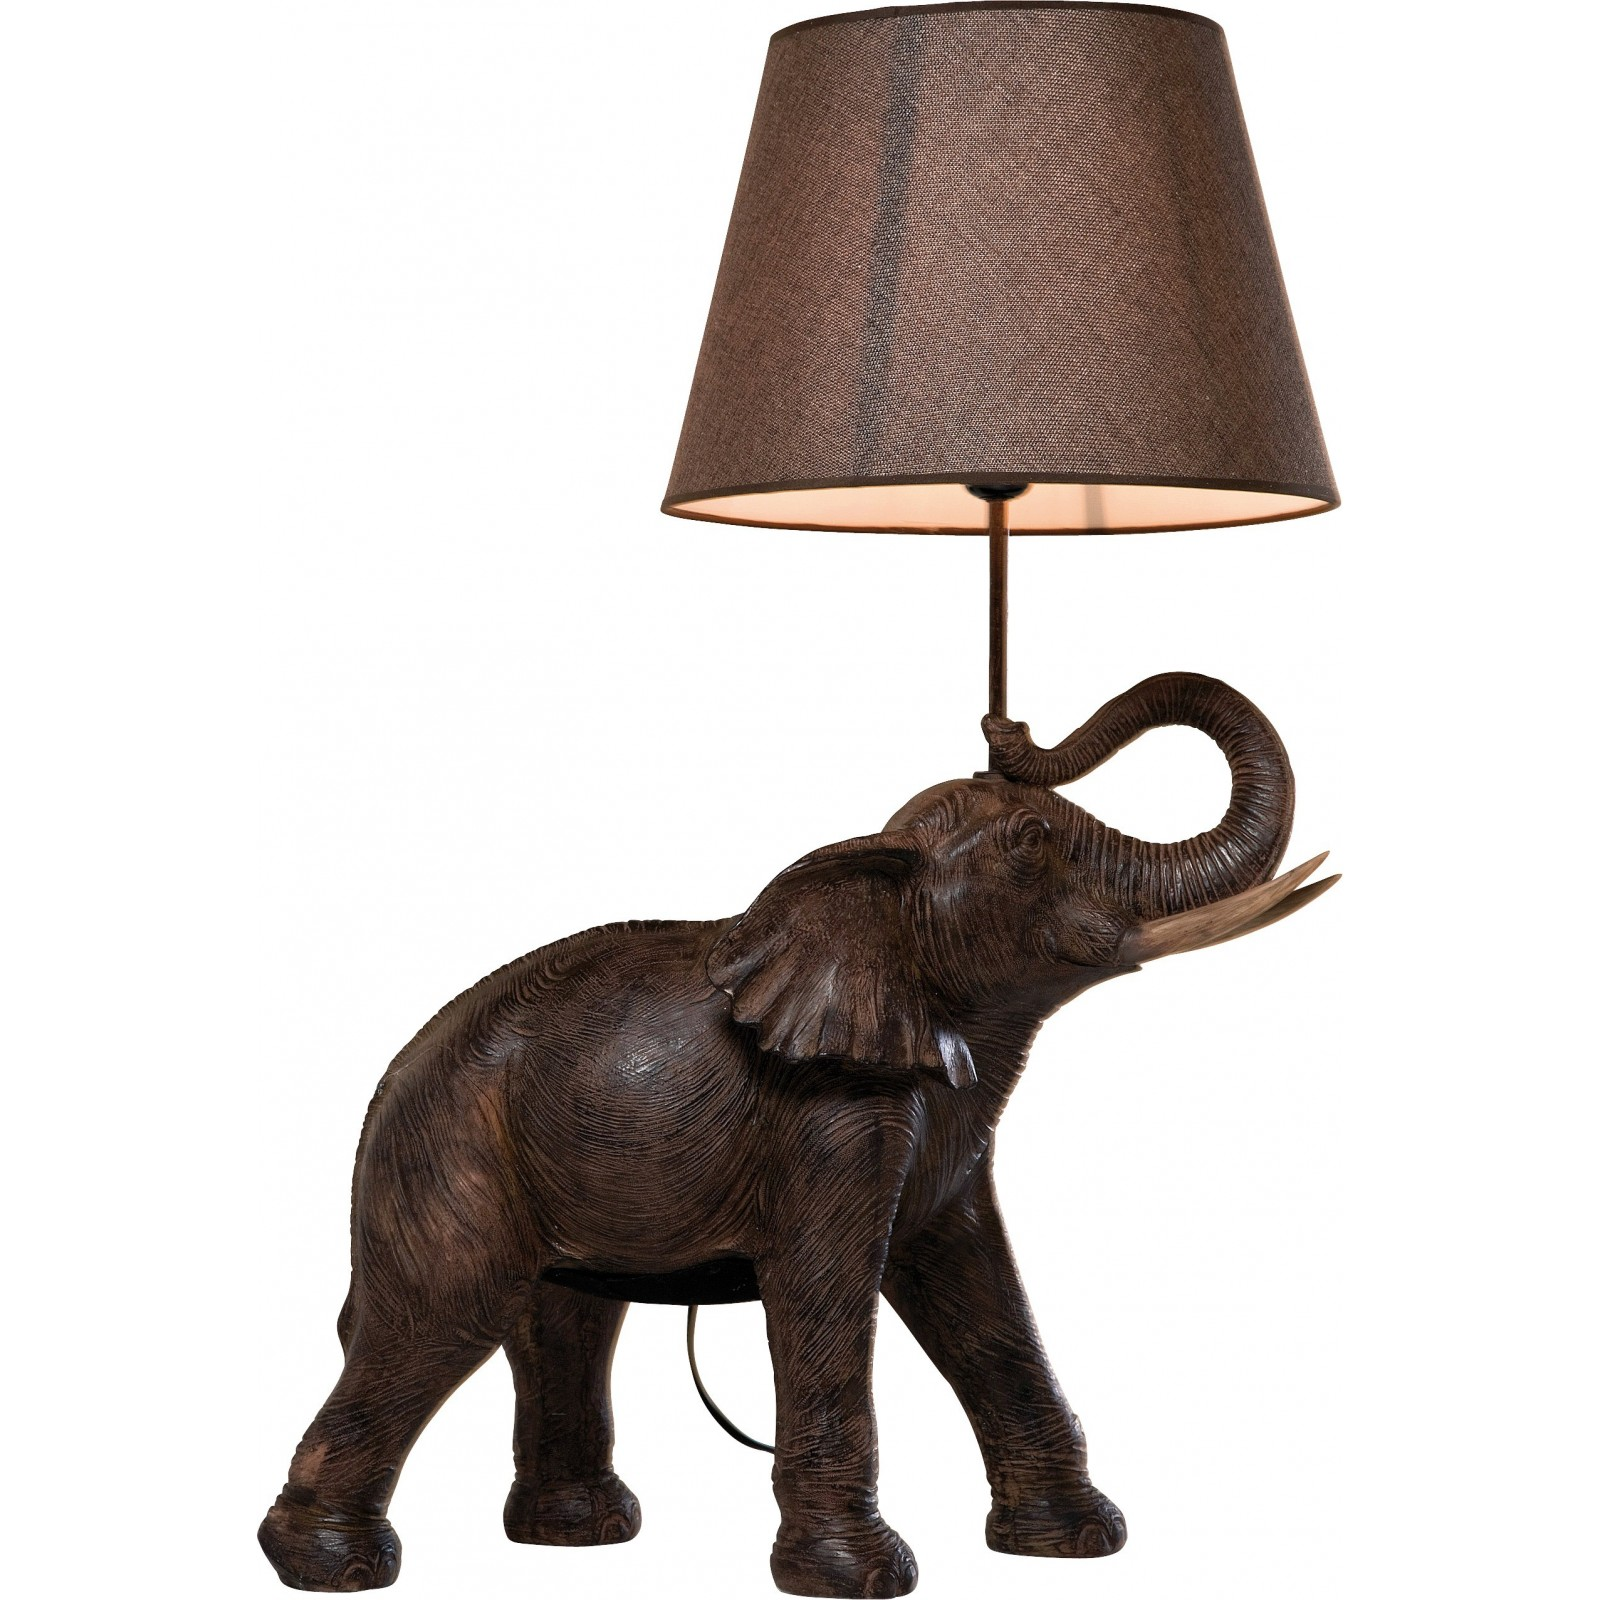 lampe de table elephant safari kare design. Black Bedroom Furniture Sets. Home Design Ideas